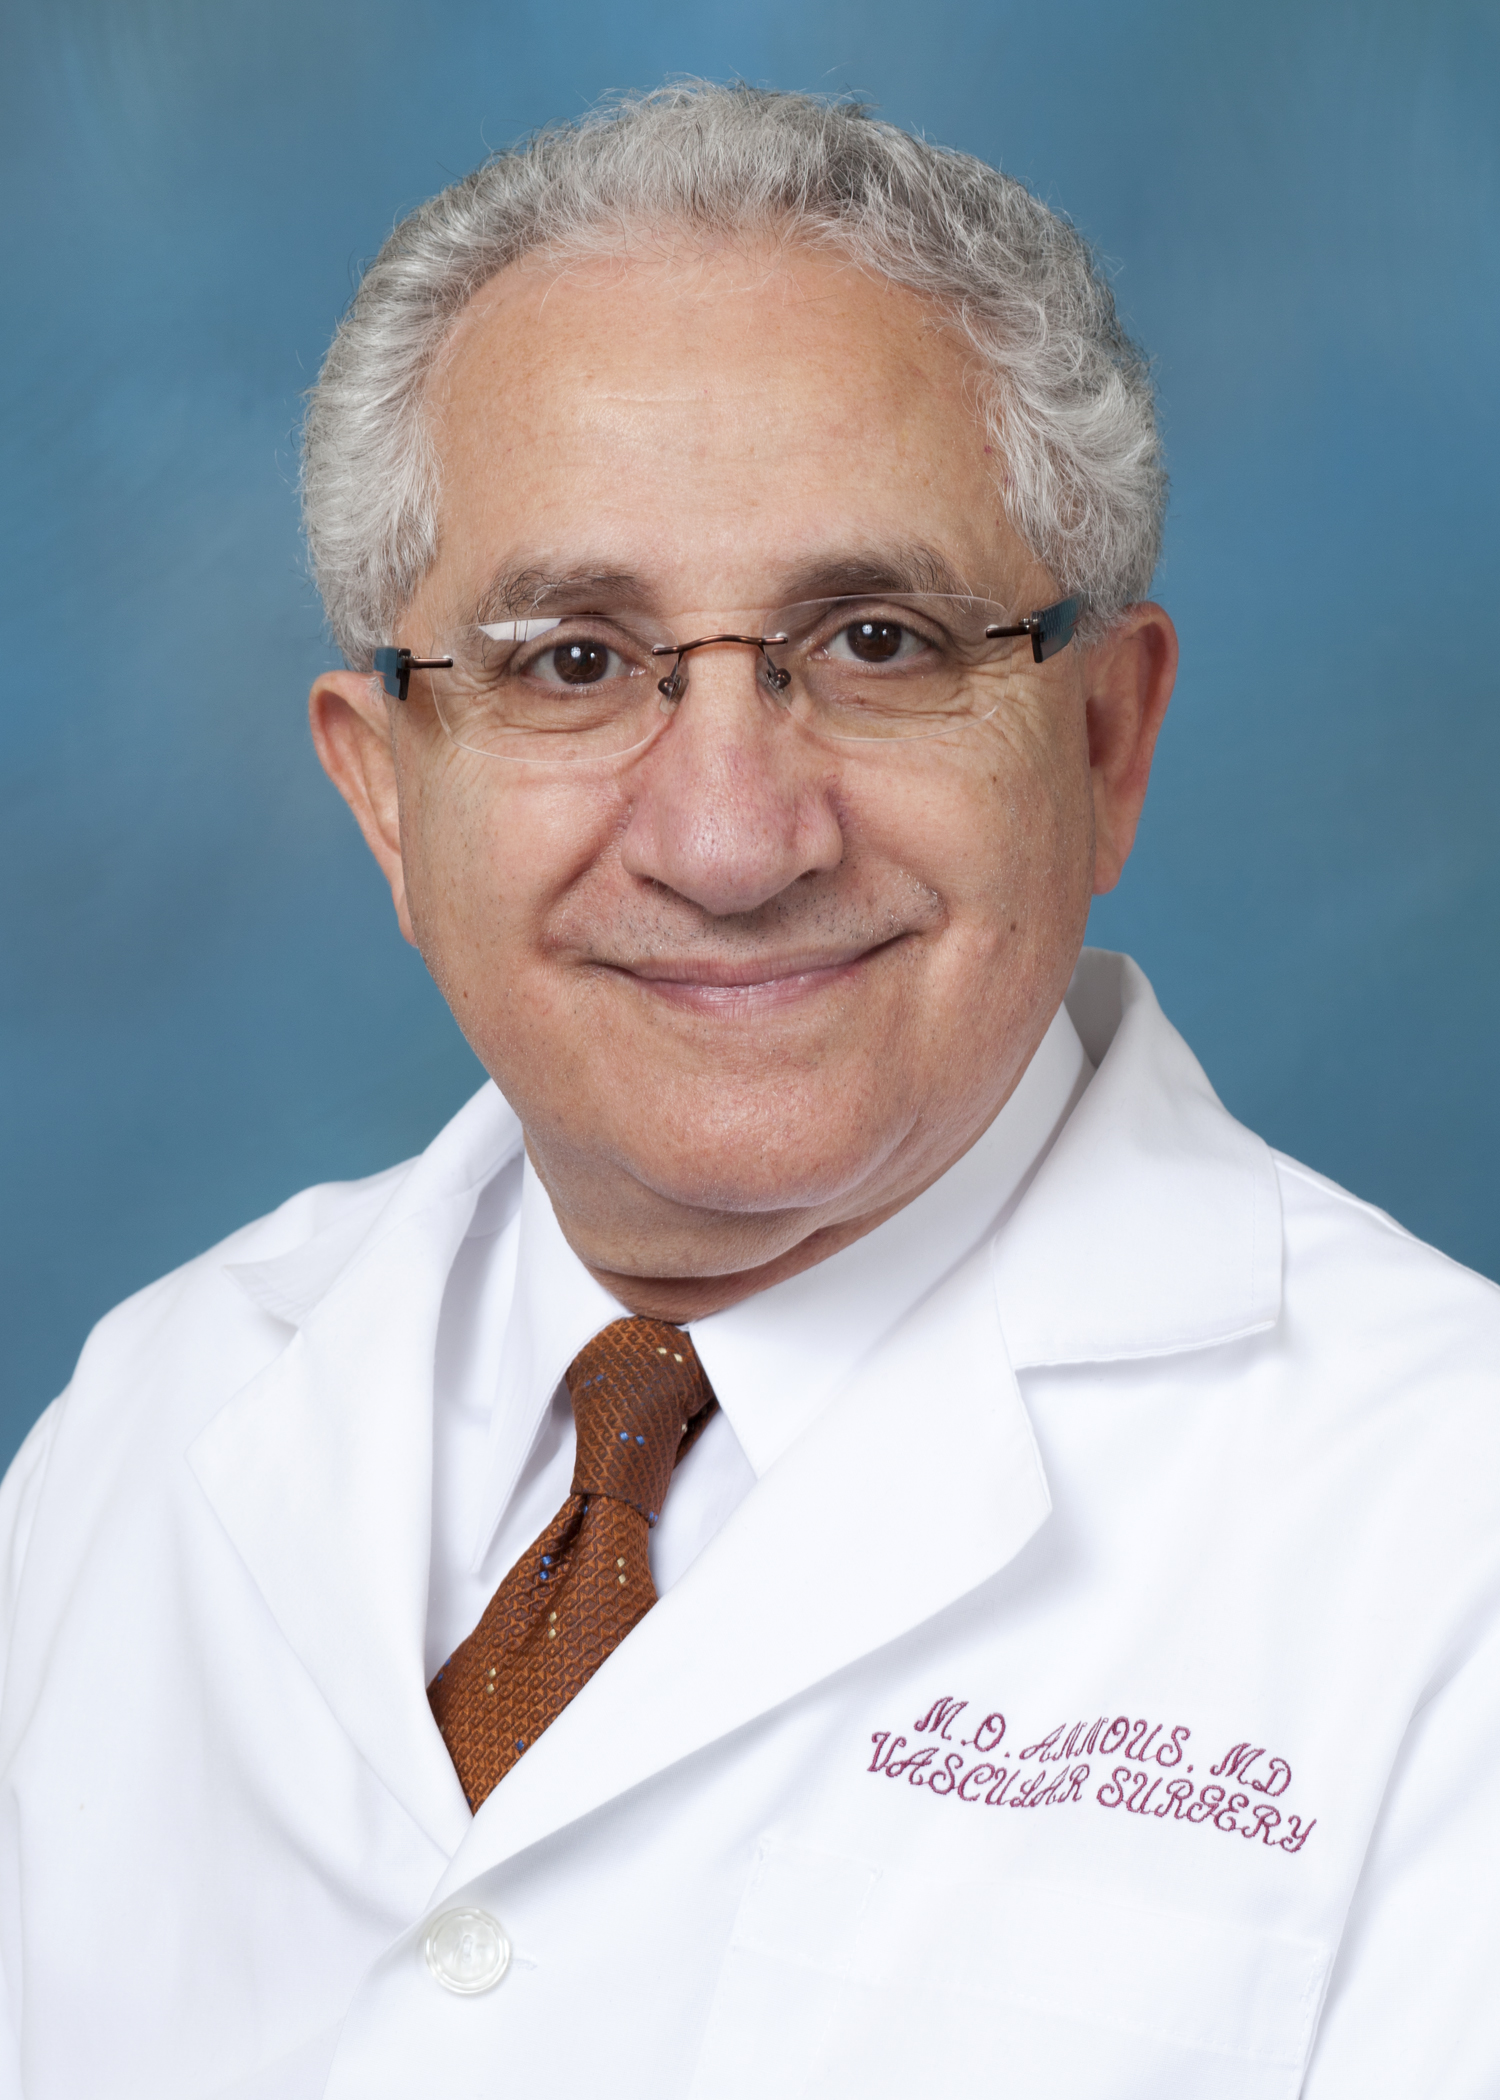 Mouhamed Annous, M.D.